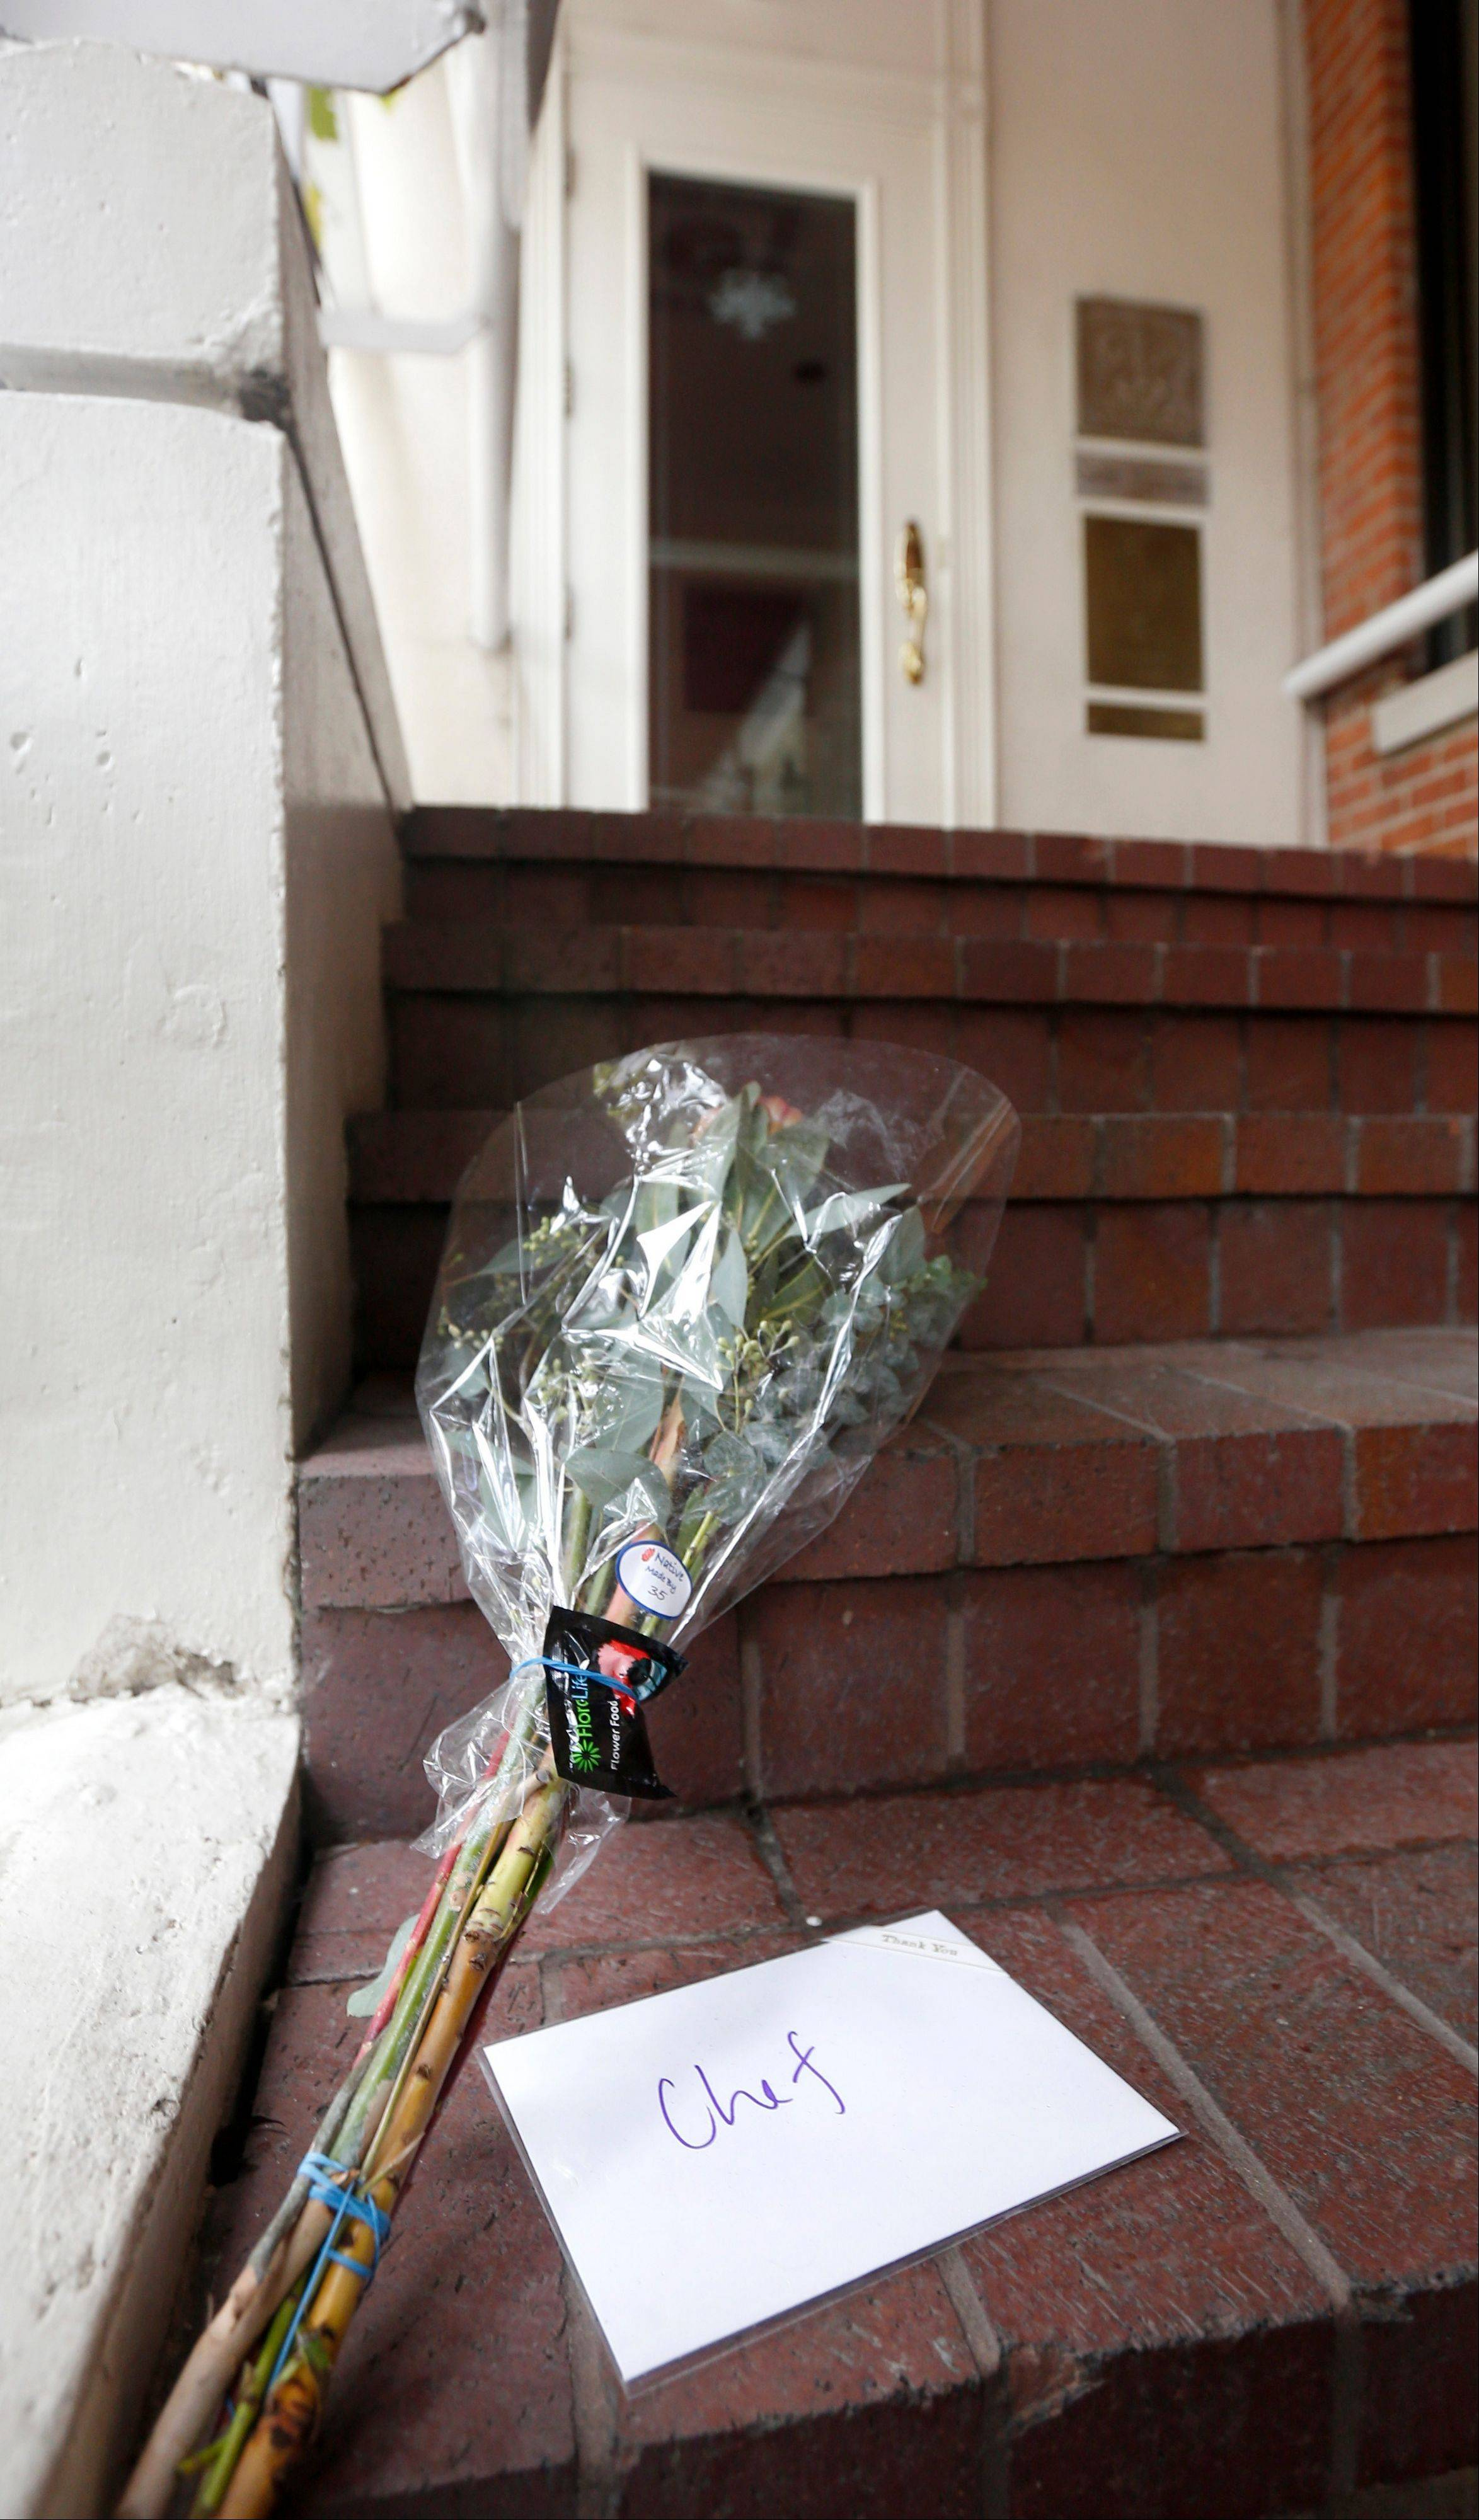 A card addressed to Chef, and a bouquet of flowers rest on the stairs to Charlie Trotter's permanently closed Chicago restaurant after reports of the chef's death Tuesday, Nov. 5, 2013, in Chicago. Trotter, 54, an award-winning chef, was a self-taught culinary master whose eponymous Chicago restaurant elevated the city�s cuisine and provided a training ground for some of the nation�s other best chefs.